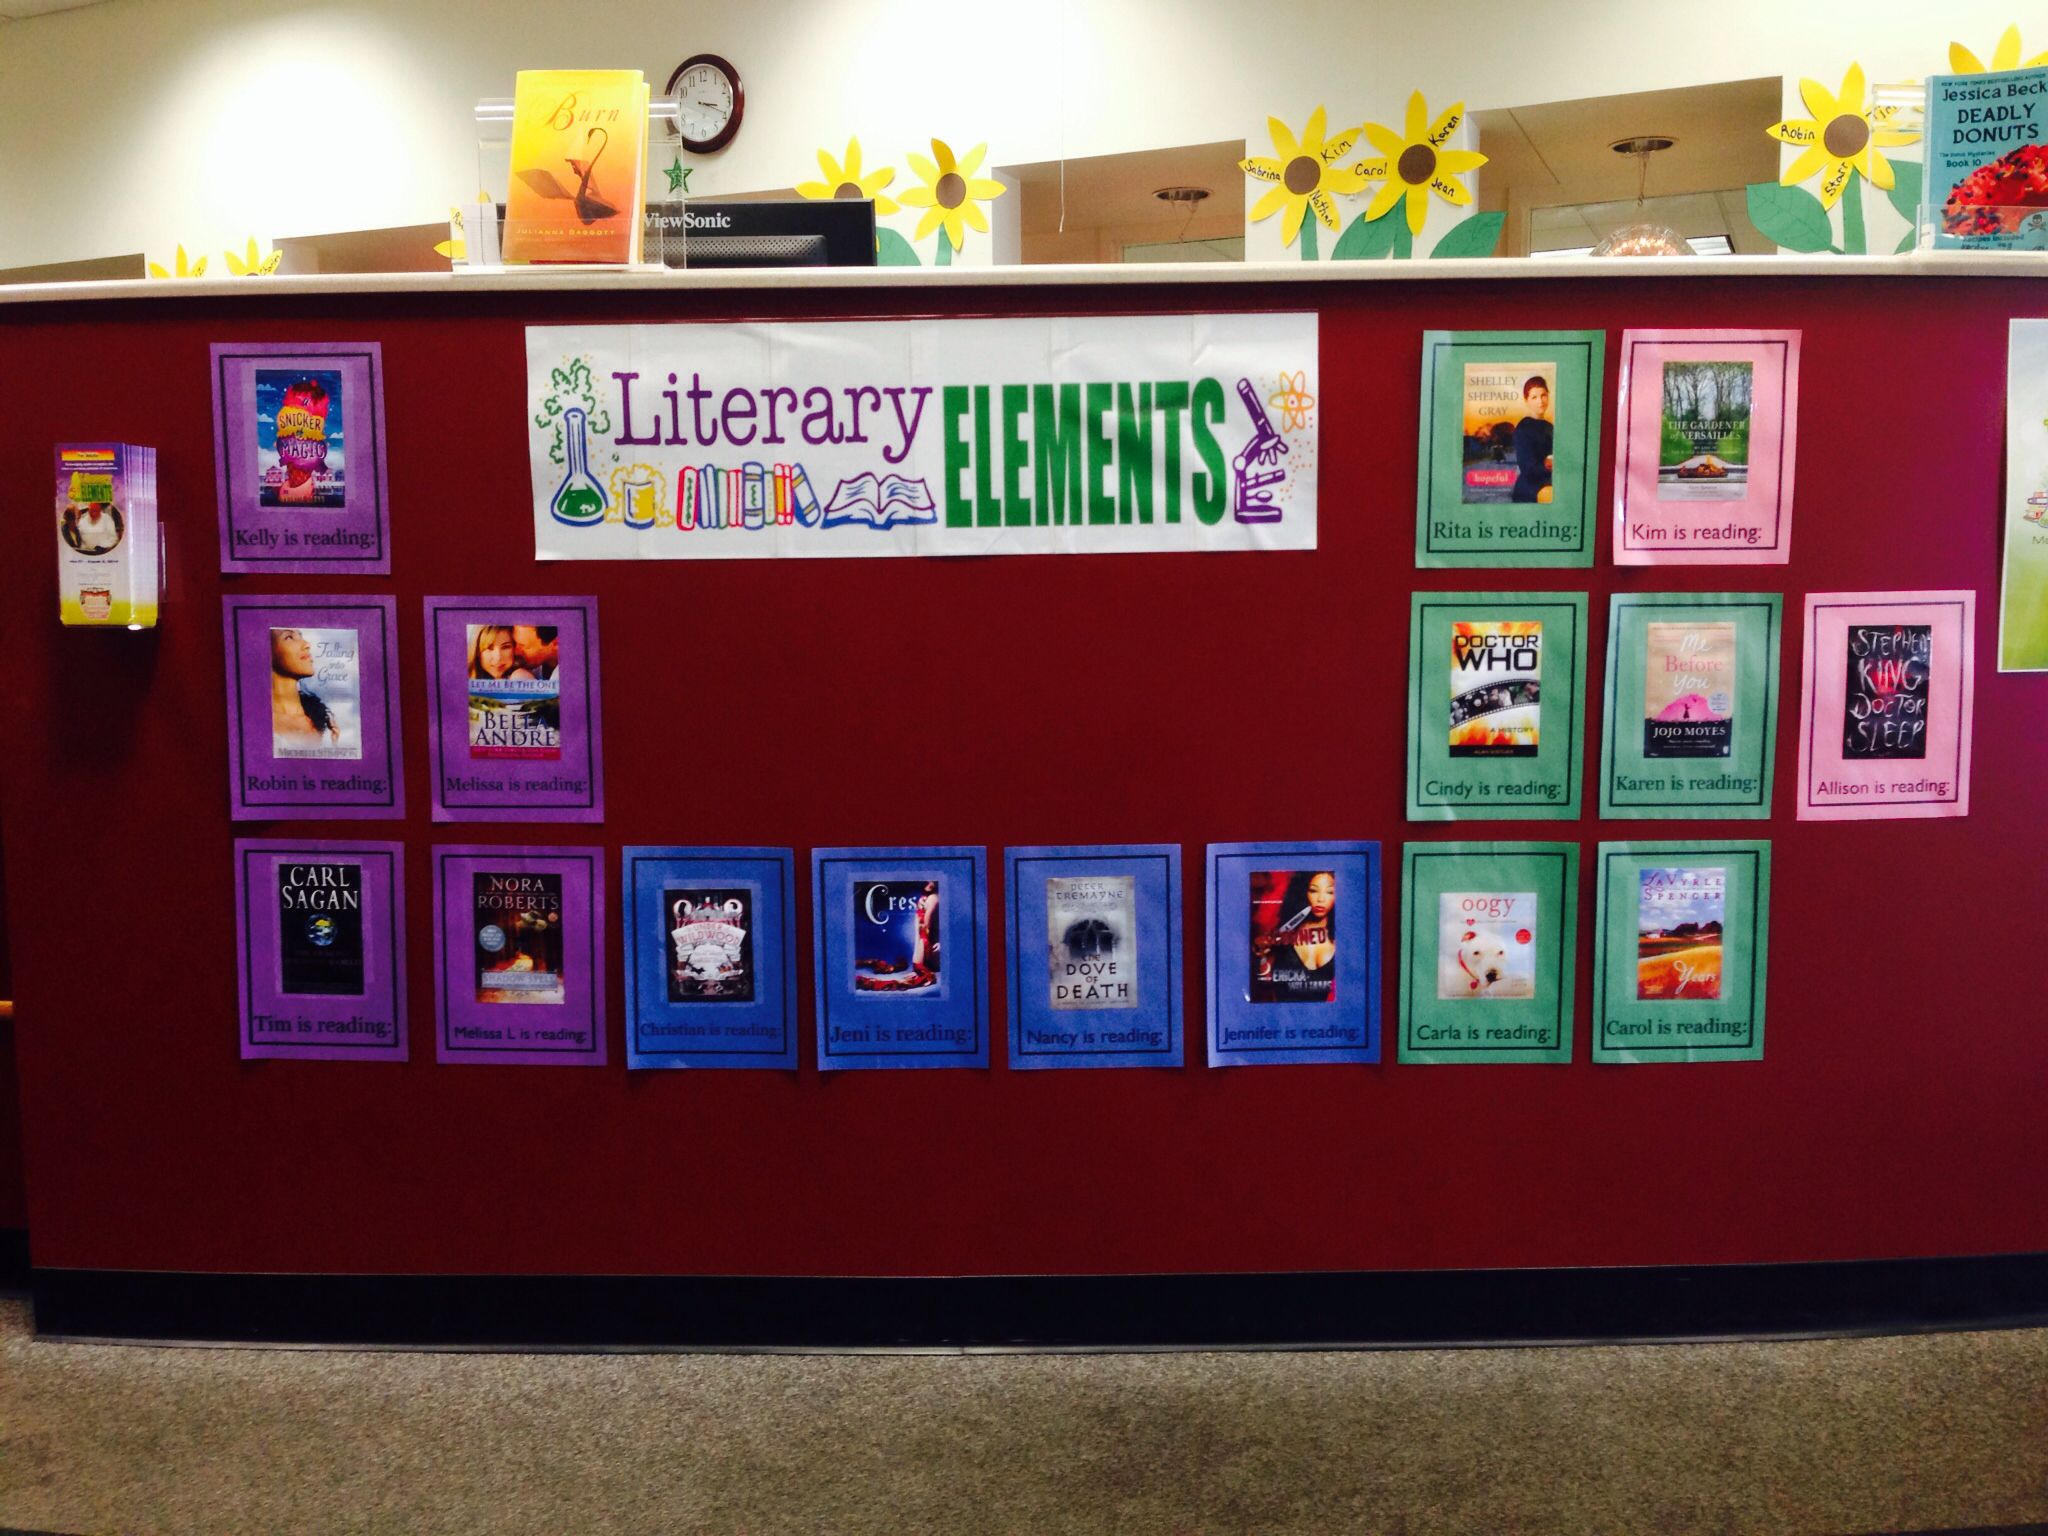 Literary Elements A Summer Reading Club For Adults Each Element Displays The Book Cover Of What Staff A Library Displays Book Display High School Library